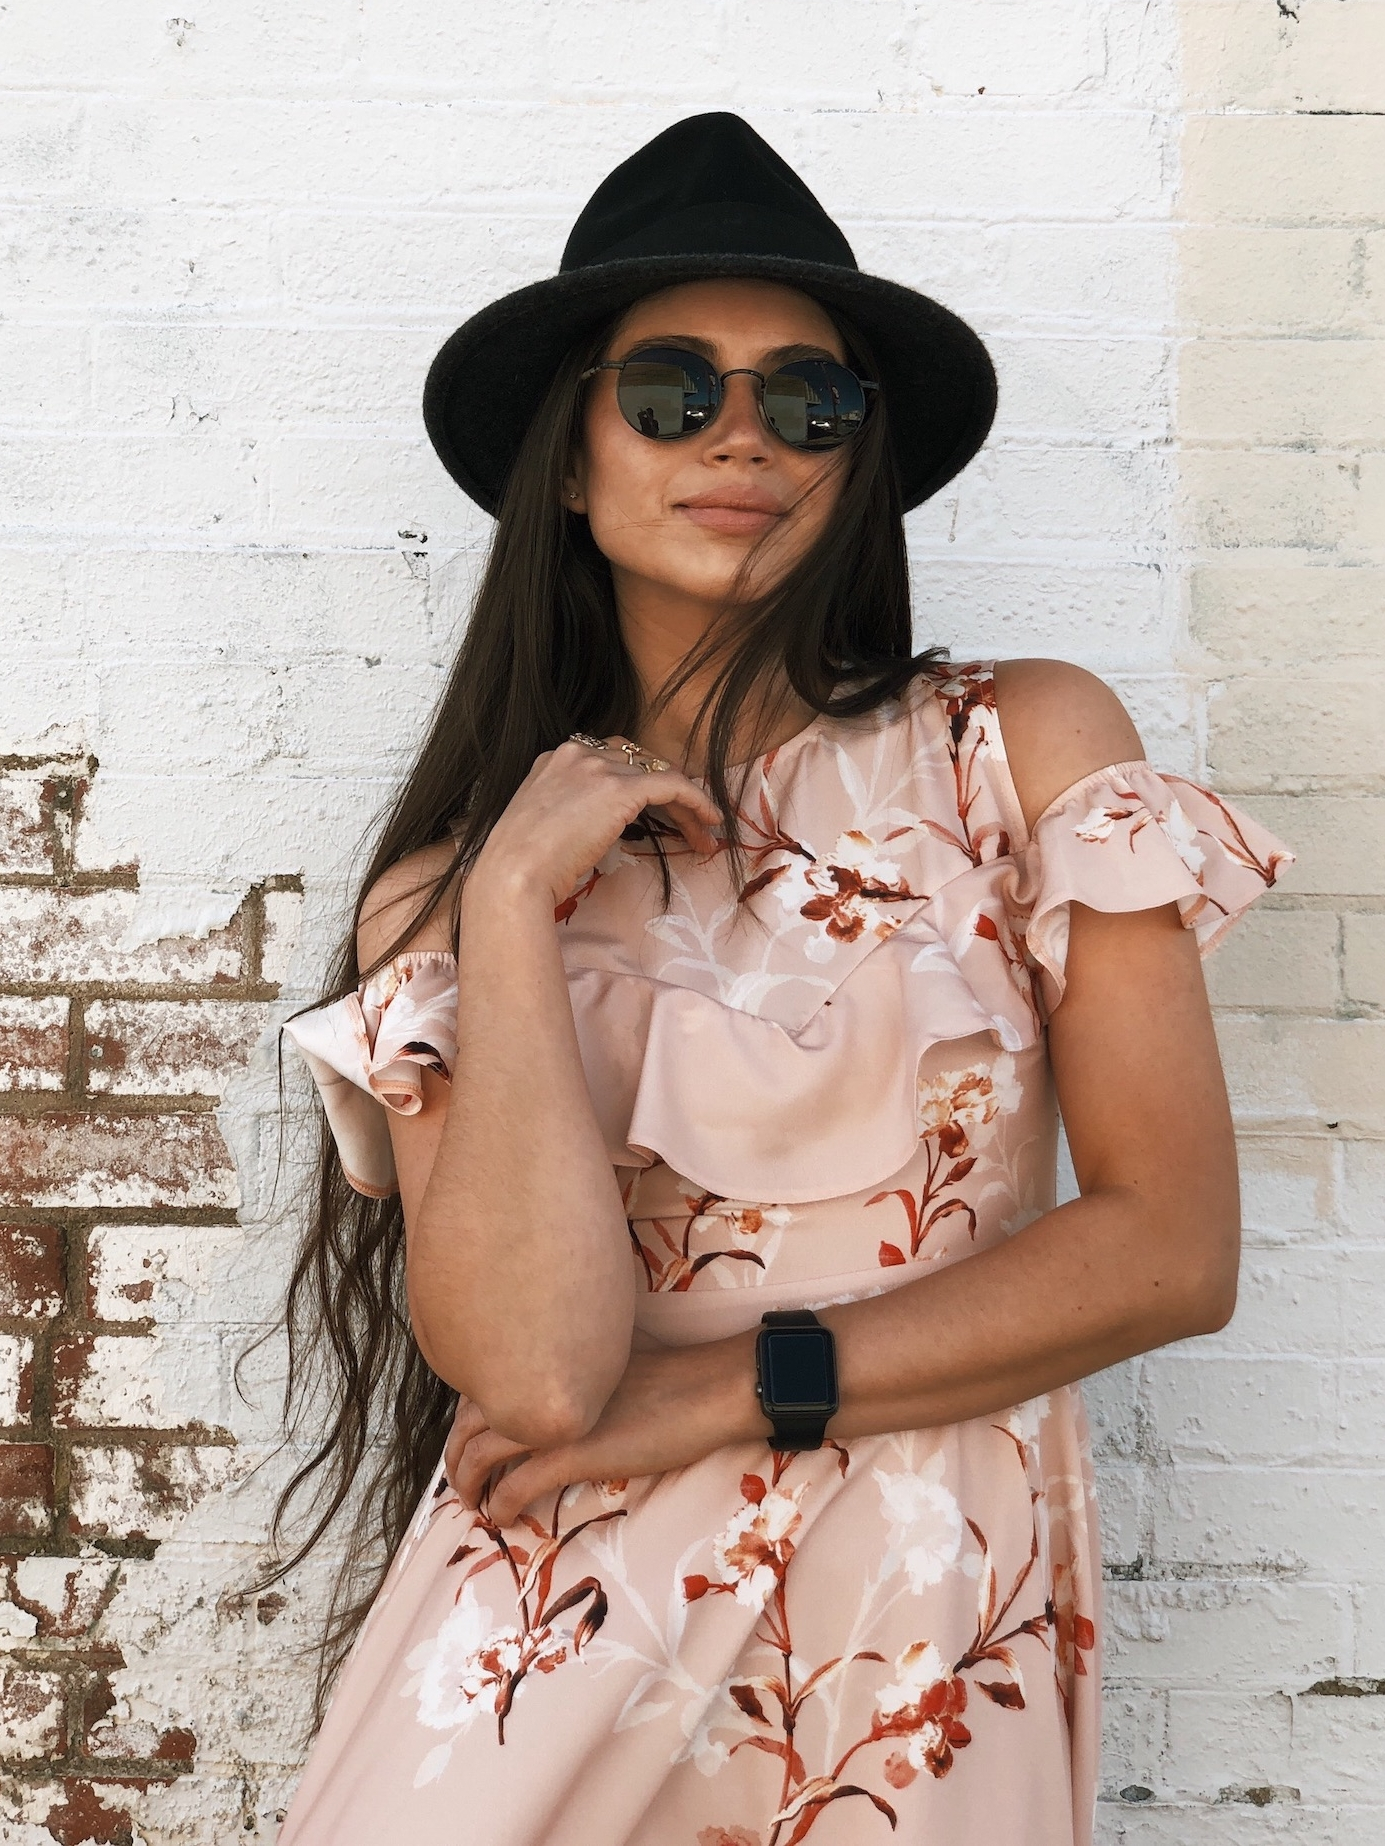 Black hat with floral dress - A Week Of Cruelty-Free Outfits & Vegan Beauty With Jessica Salazar From All There August on The Good Trade